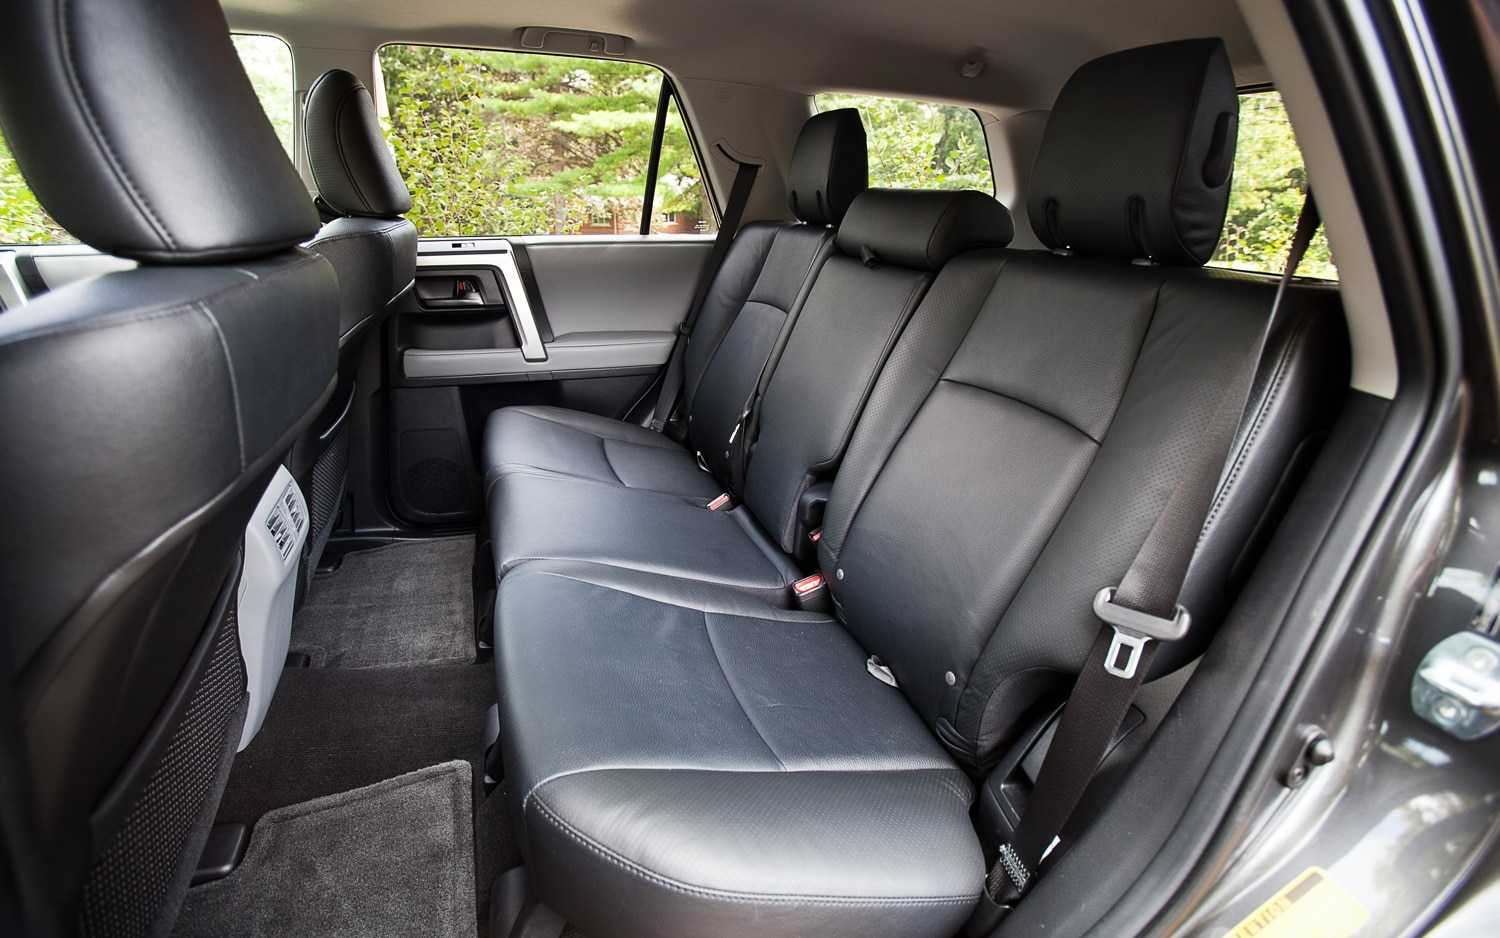 cheap suvs with 3rd row autos post. Black Bedroom Furniture Sets. Home Design Ideas